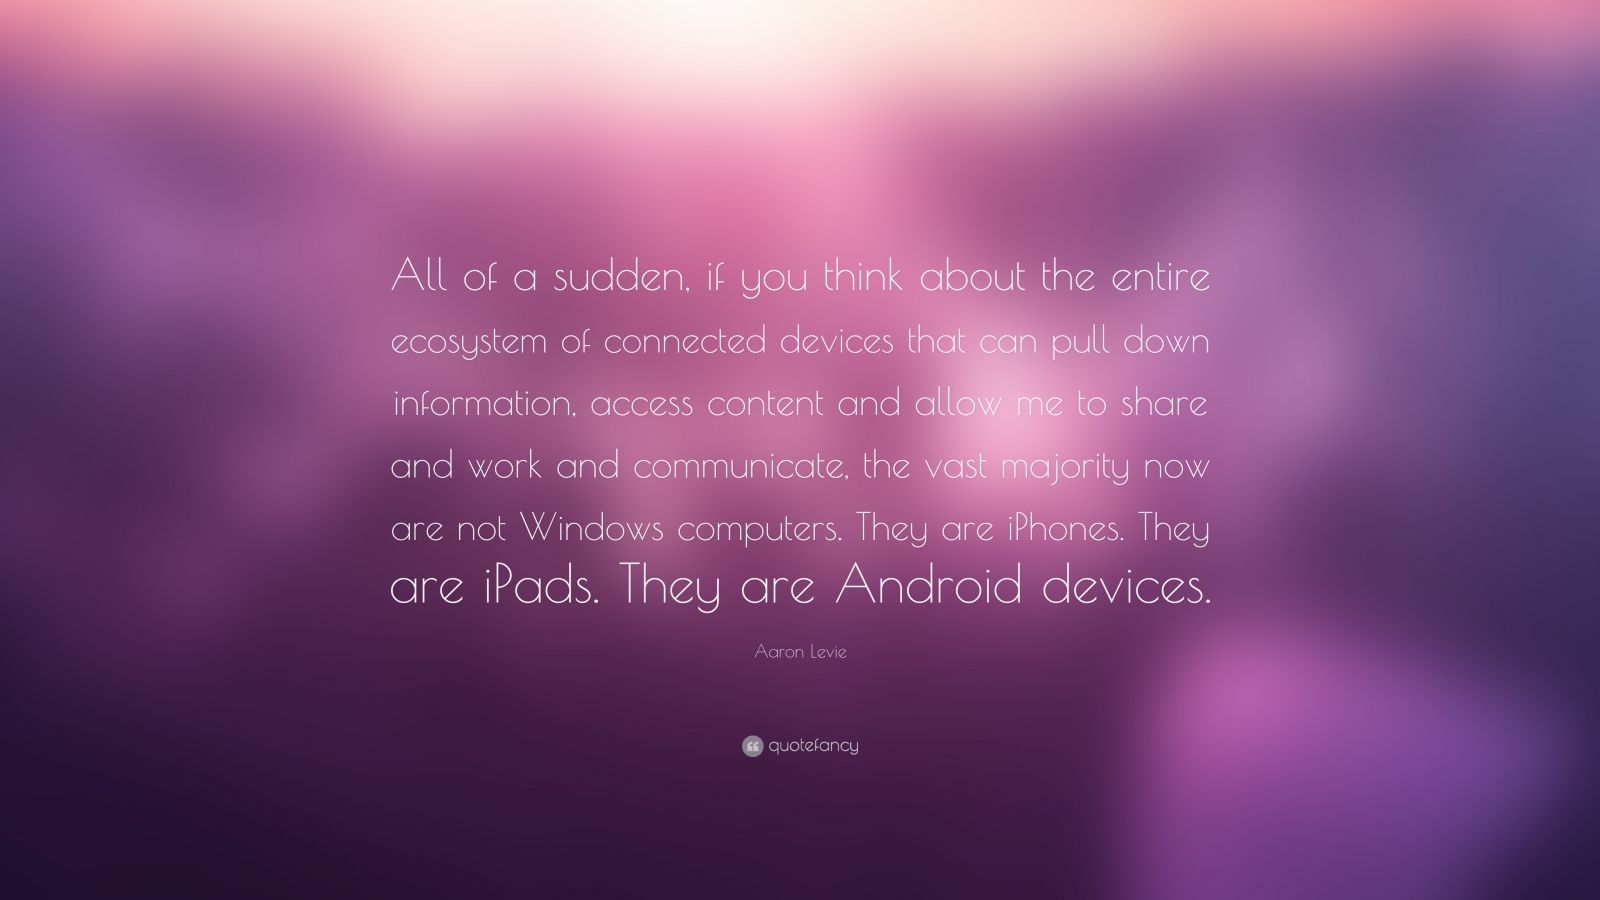 """Aaron Levie Quote: """"All of a sudden, if you think about the entire ecosystem of connected devices that can pull down information, access content and allow me to share and work and communicate, the vast majority now are not Windows computers. They are iPhones. They are iPads. They are Android devices."""""""